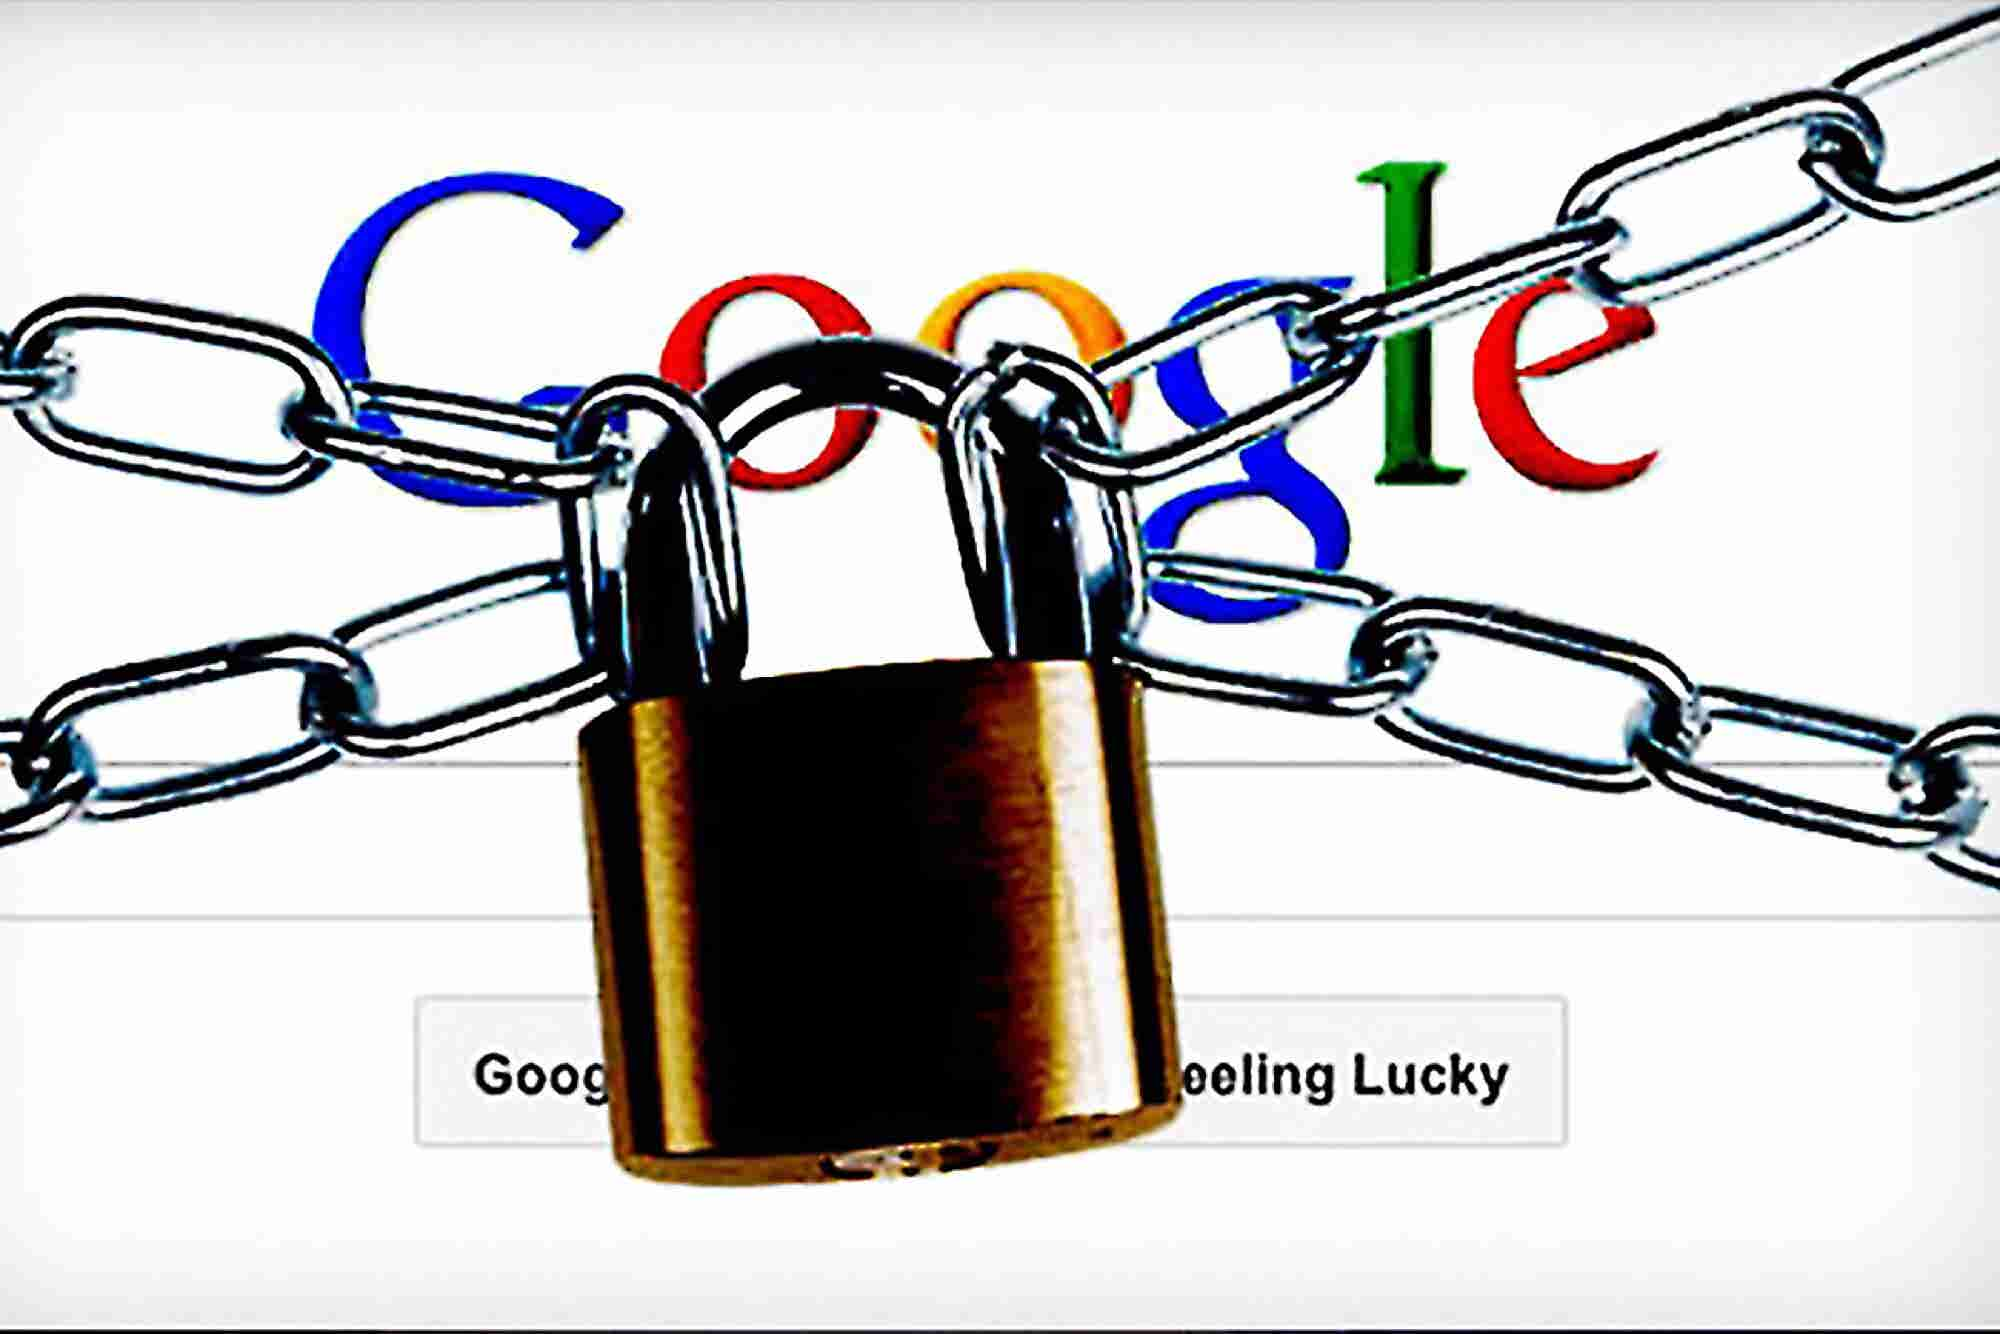 Google's New Secure Search Means More Work for Online Business Owners